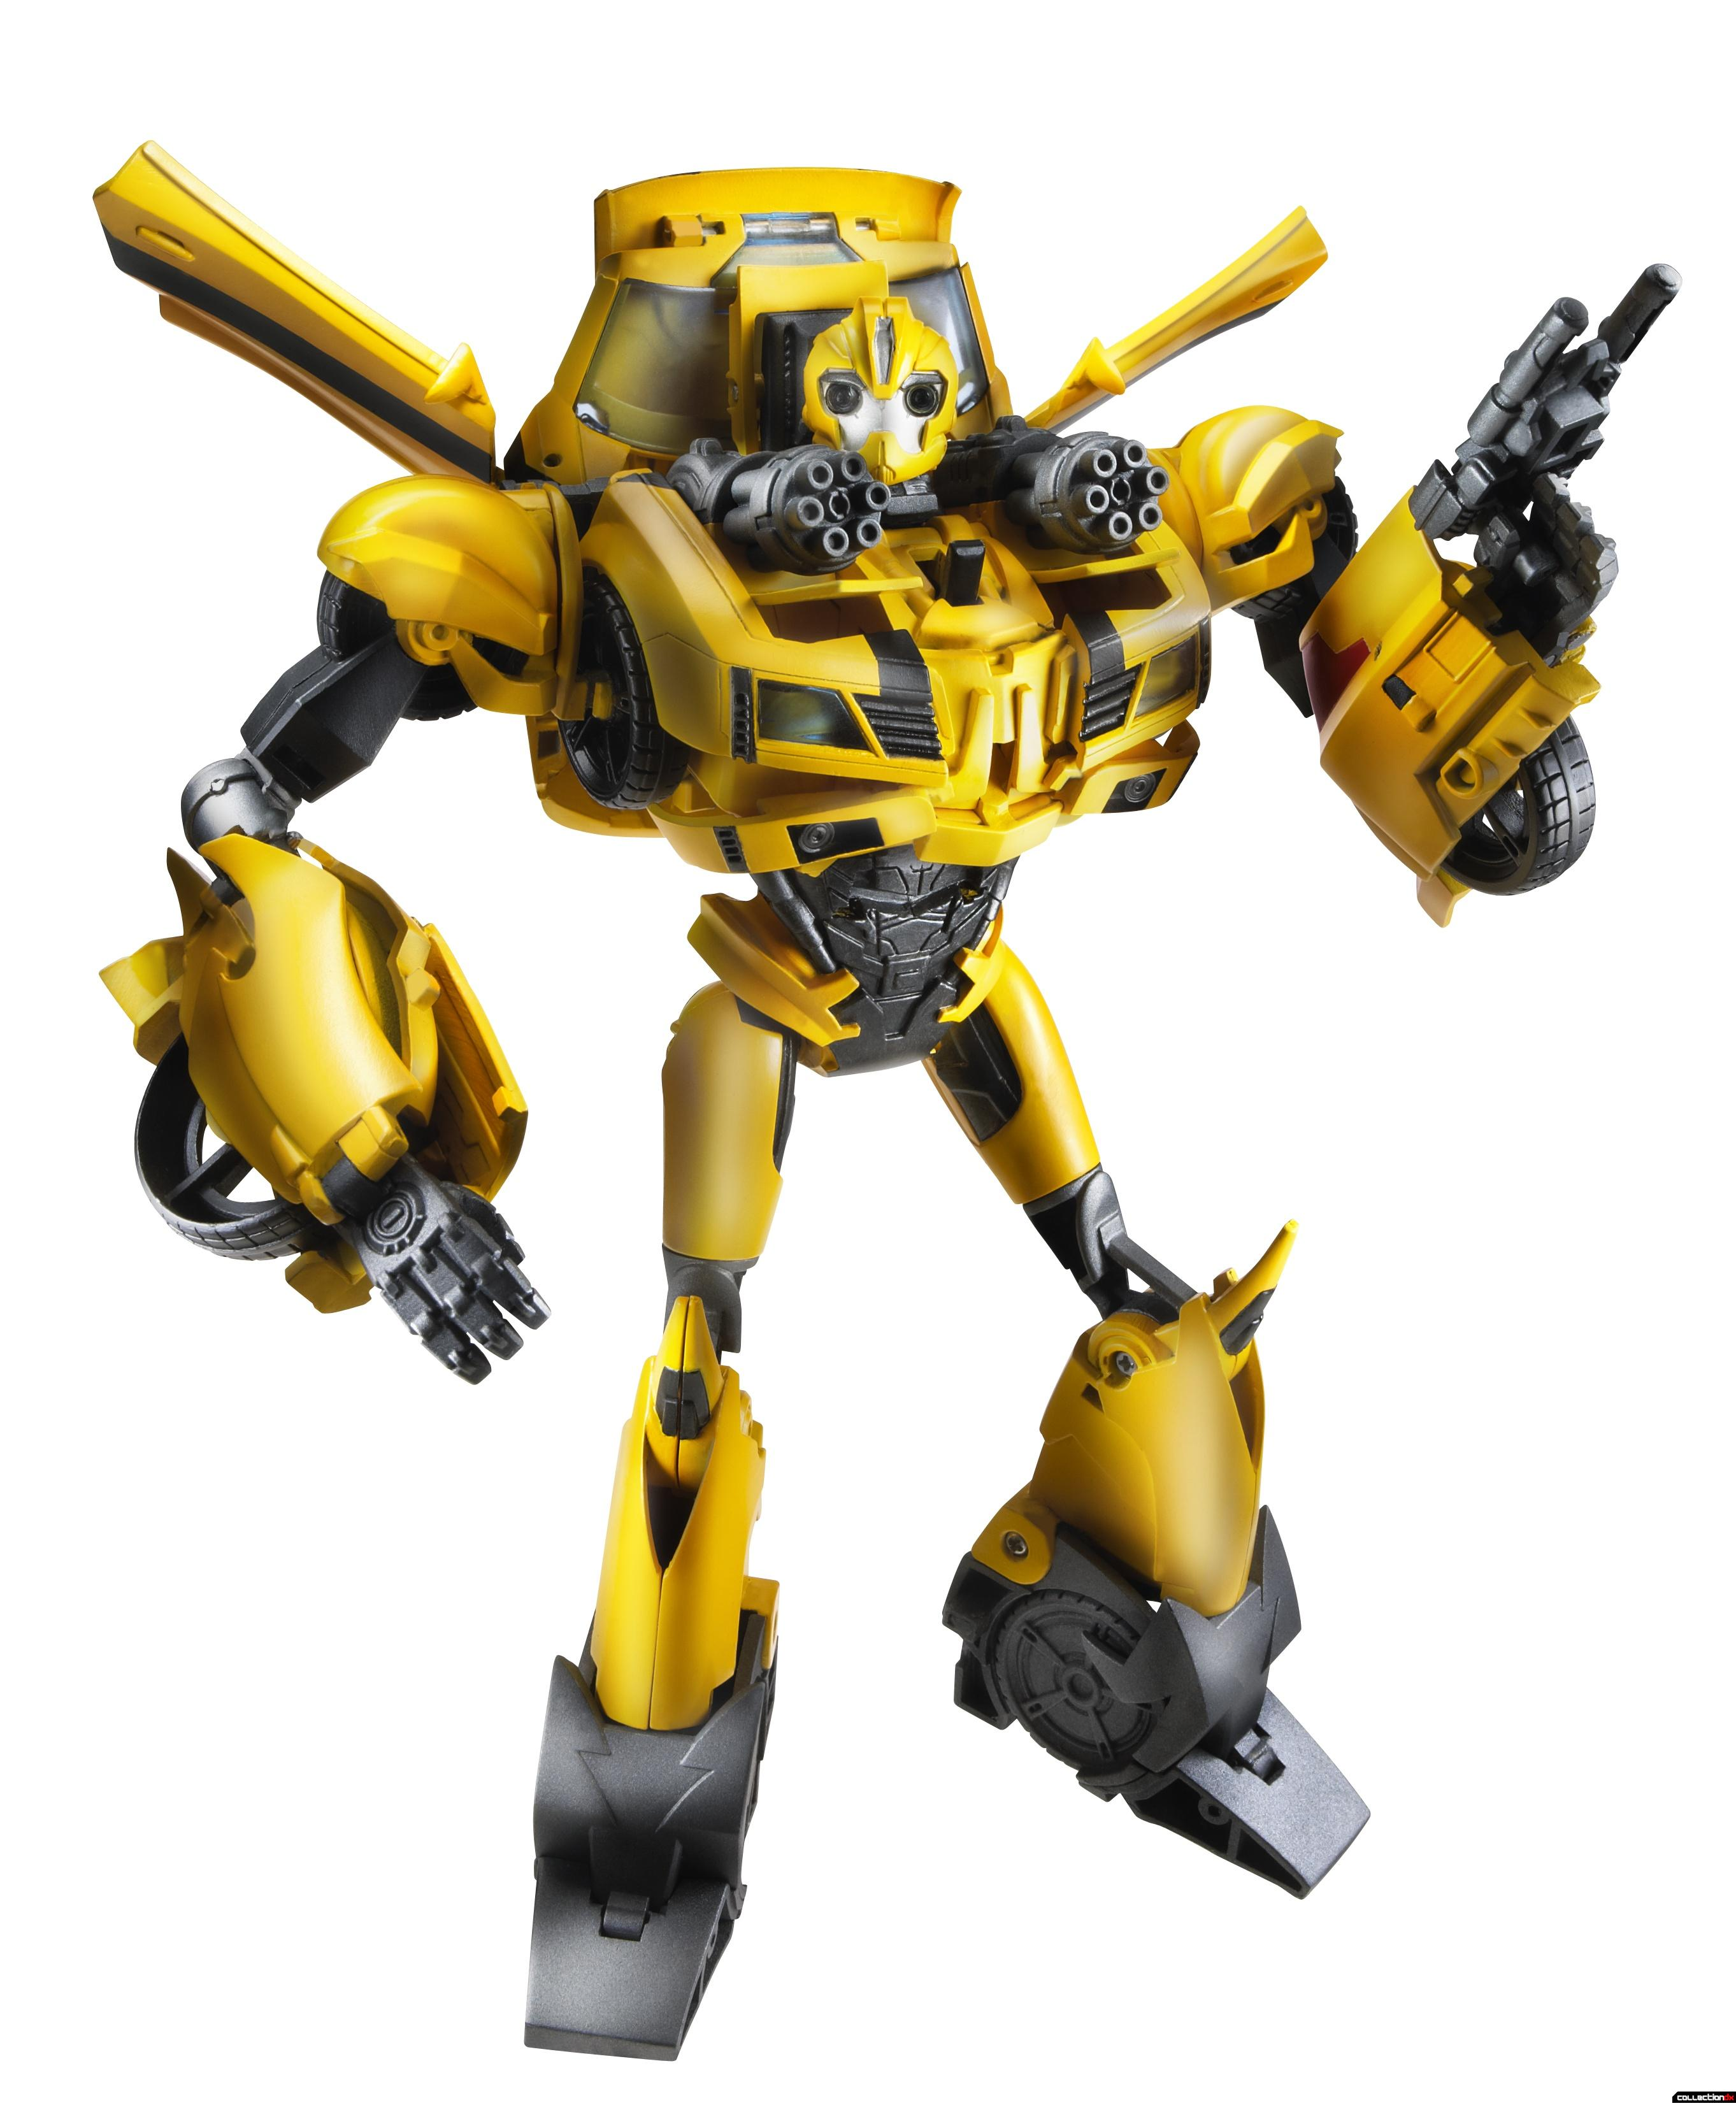 Transformers Prime Weaponizers Bumblebee (Robot battle mode) 38286